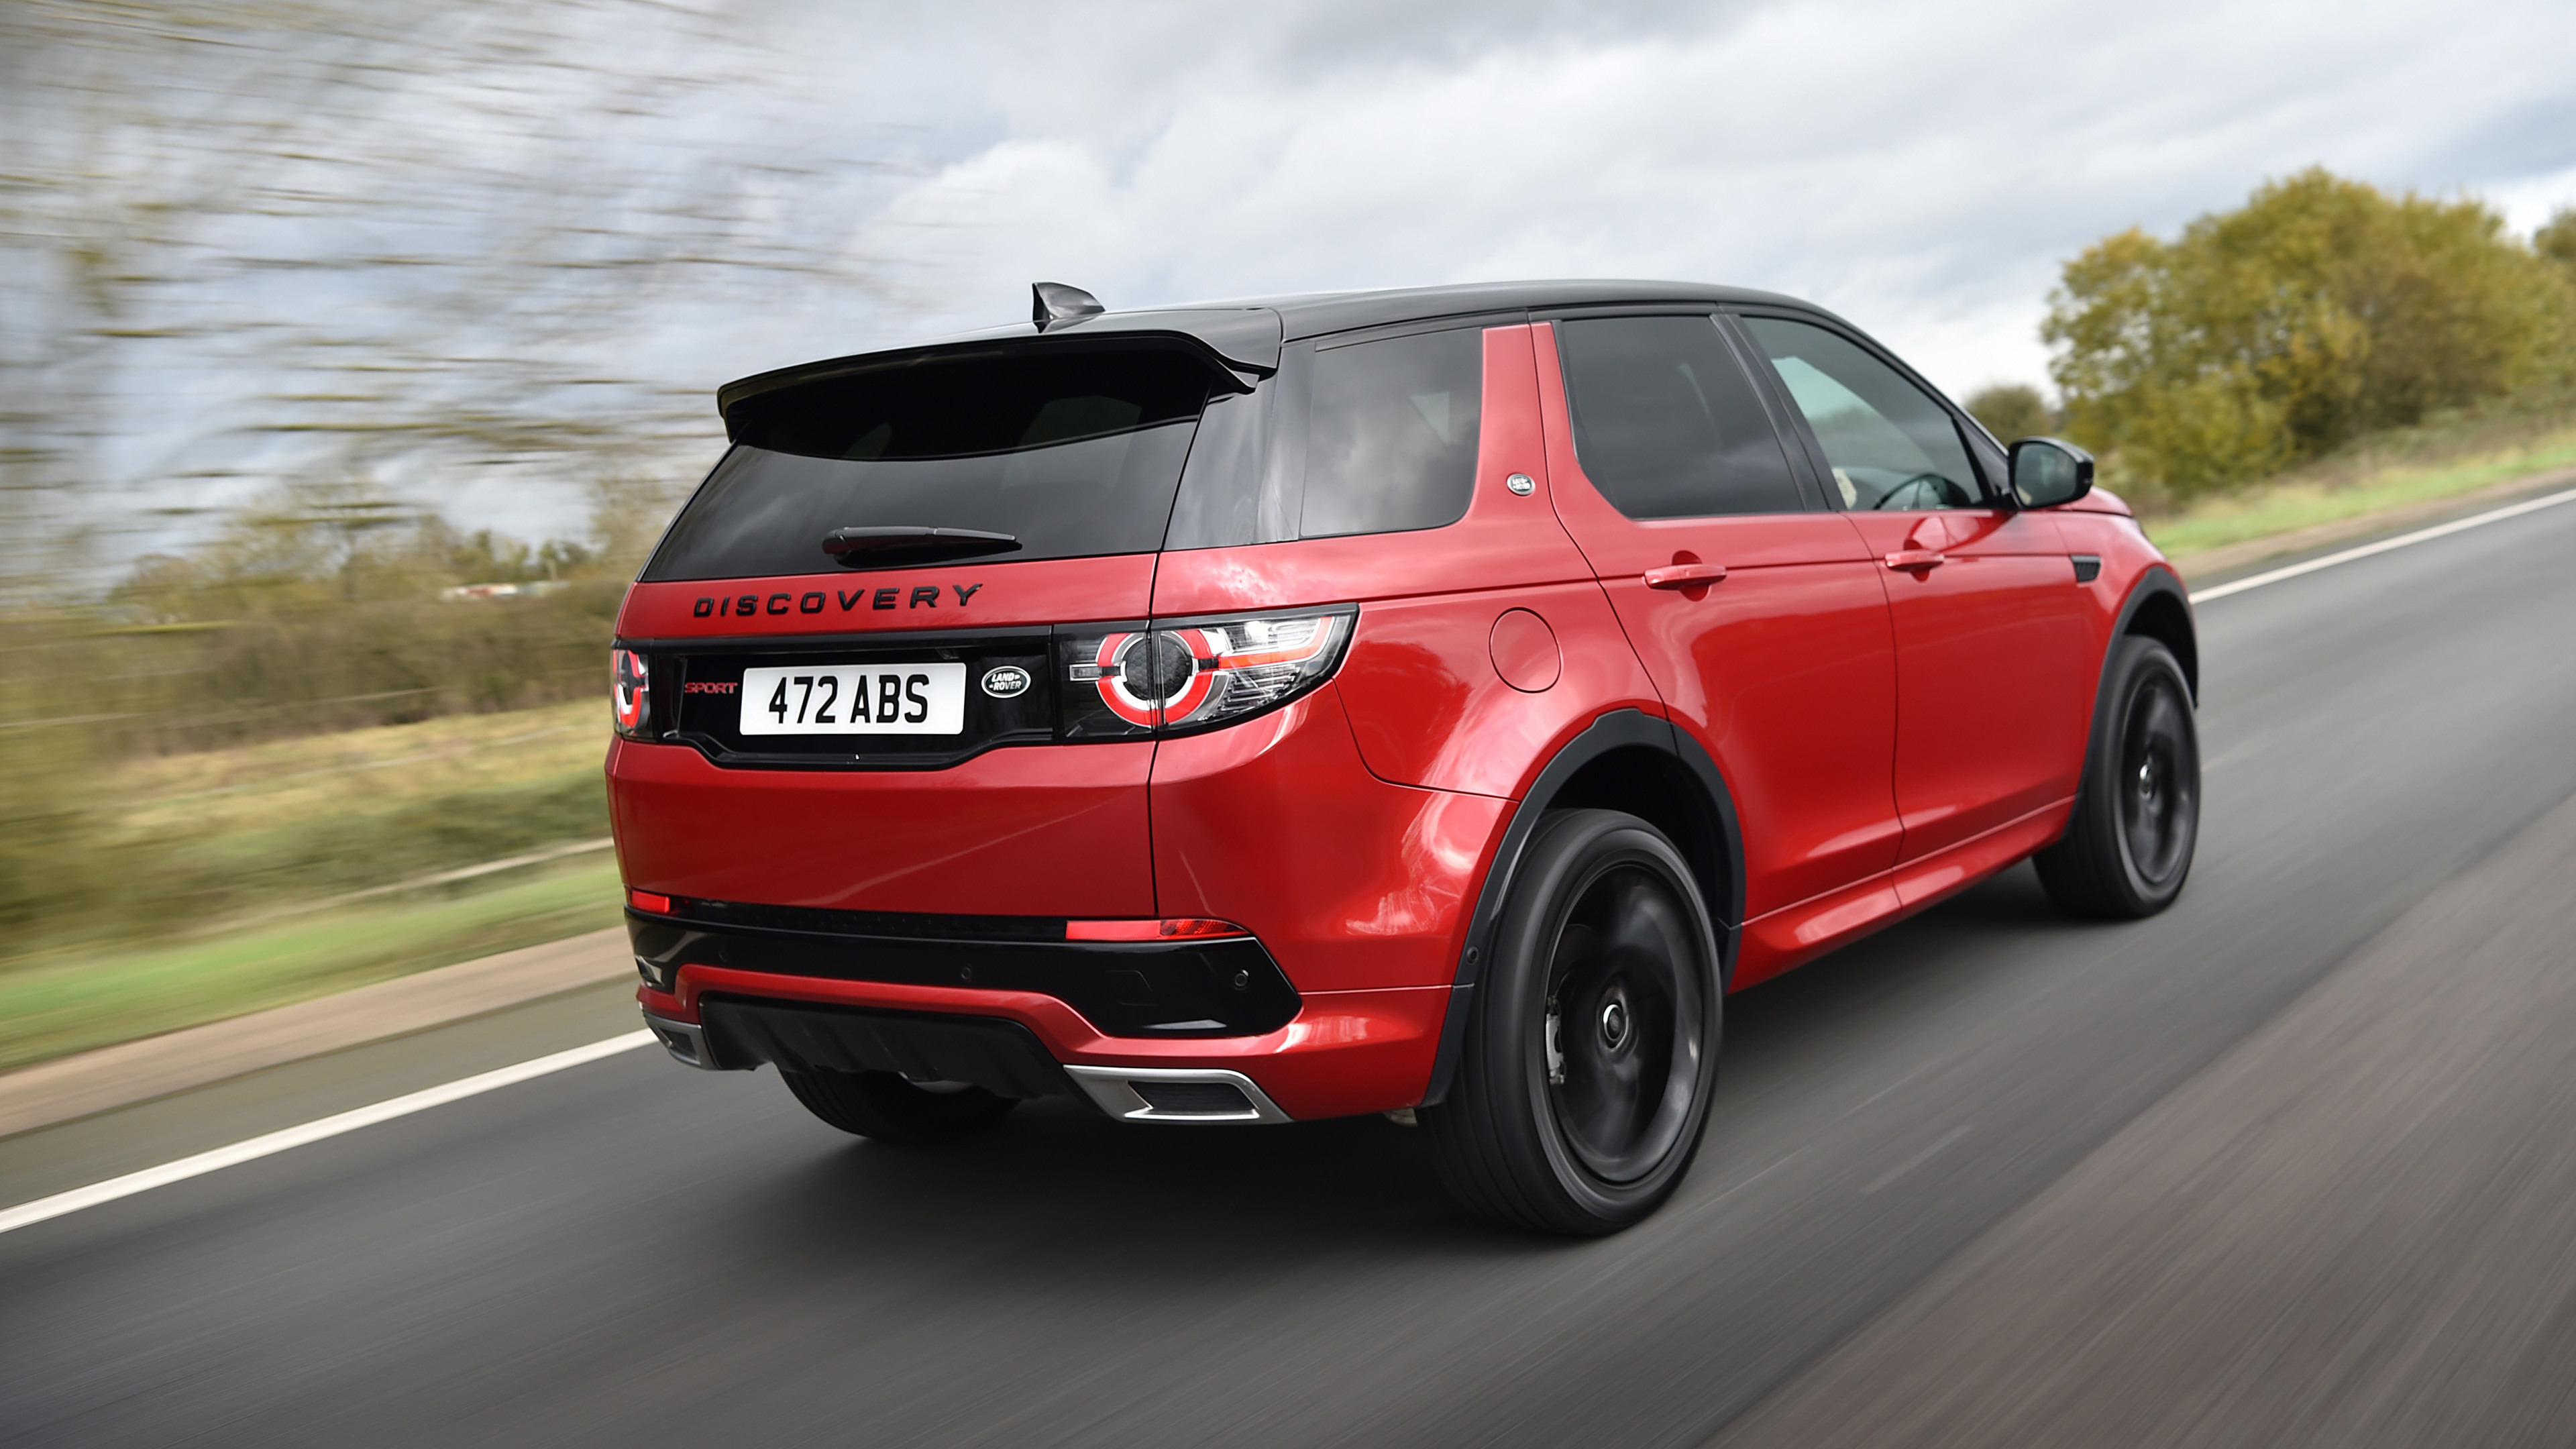 land rover discovery sport hse si4 dynamic lux rear 2017 1539107858 - Land Rover Discovery Sport HSE Si4 Dynamic Lux Rear 2017 - land rover wallpapers, land rover discovery wallpapers, hd-wallpapers, cars wallpapers, 4k-wallpapers, 2017 cars wallpapers